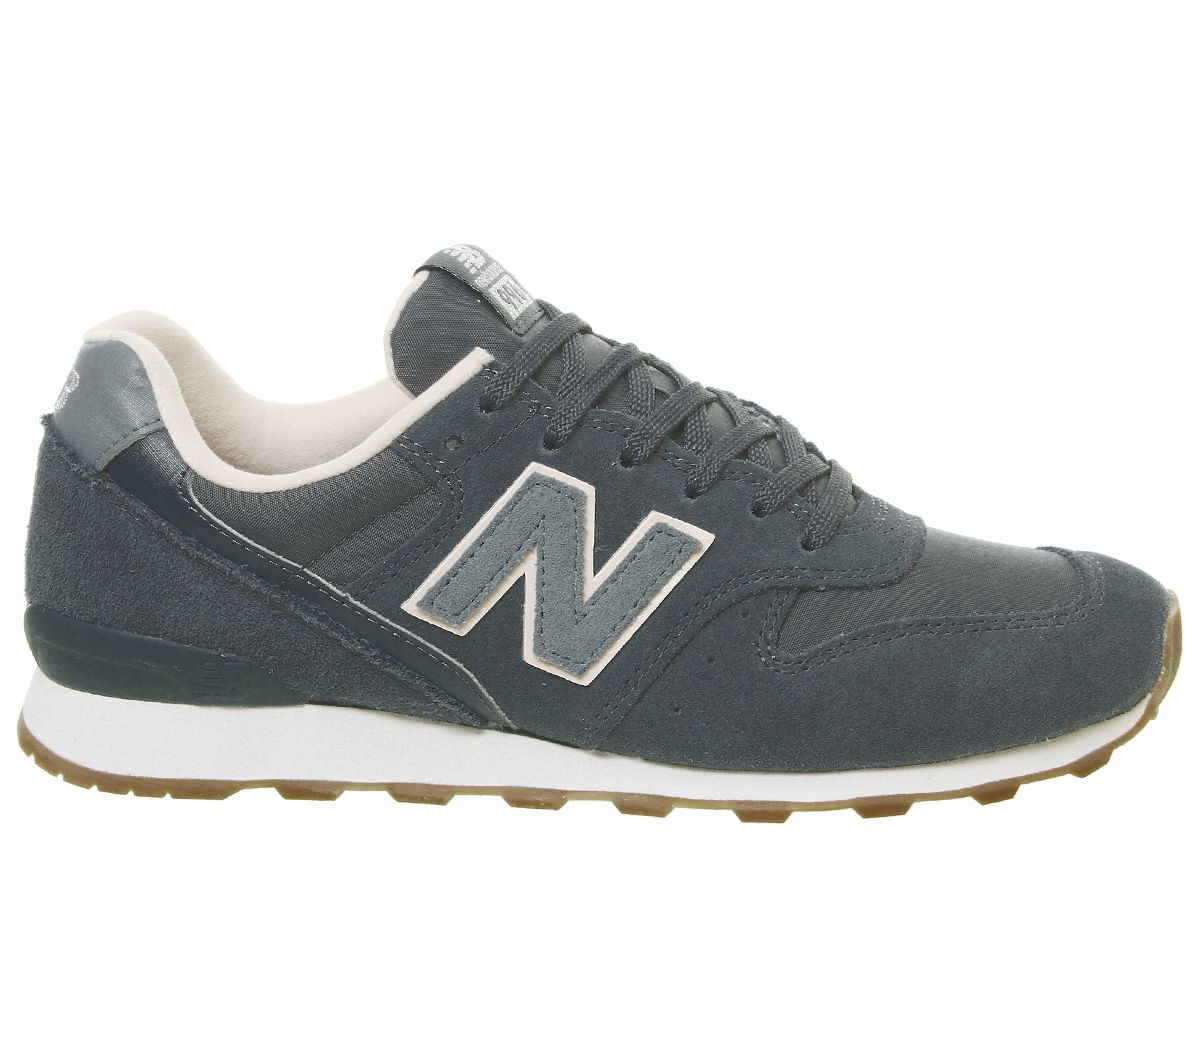 Details about Womens New Balance 996 Trainers Orion Blue Pale Blush Exclusive Trainers Shoes